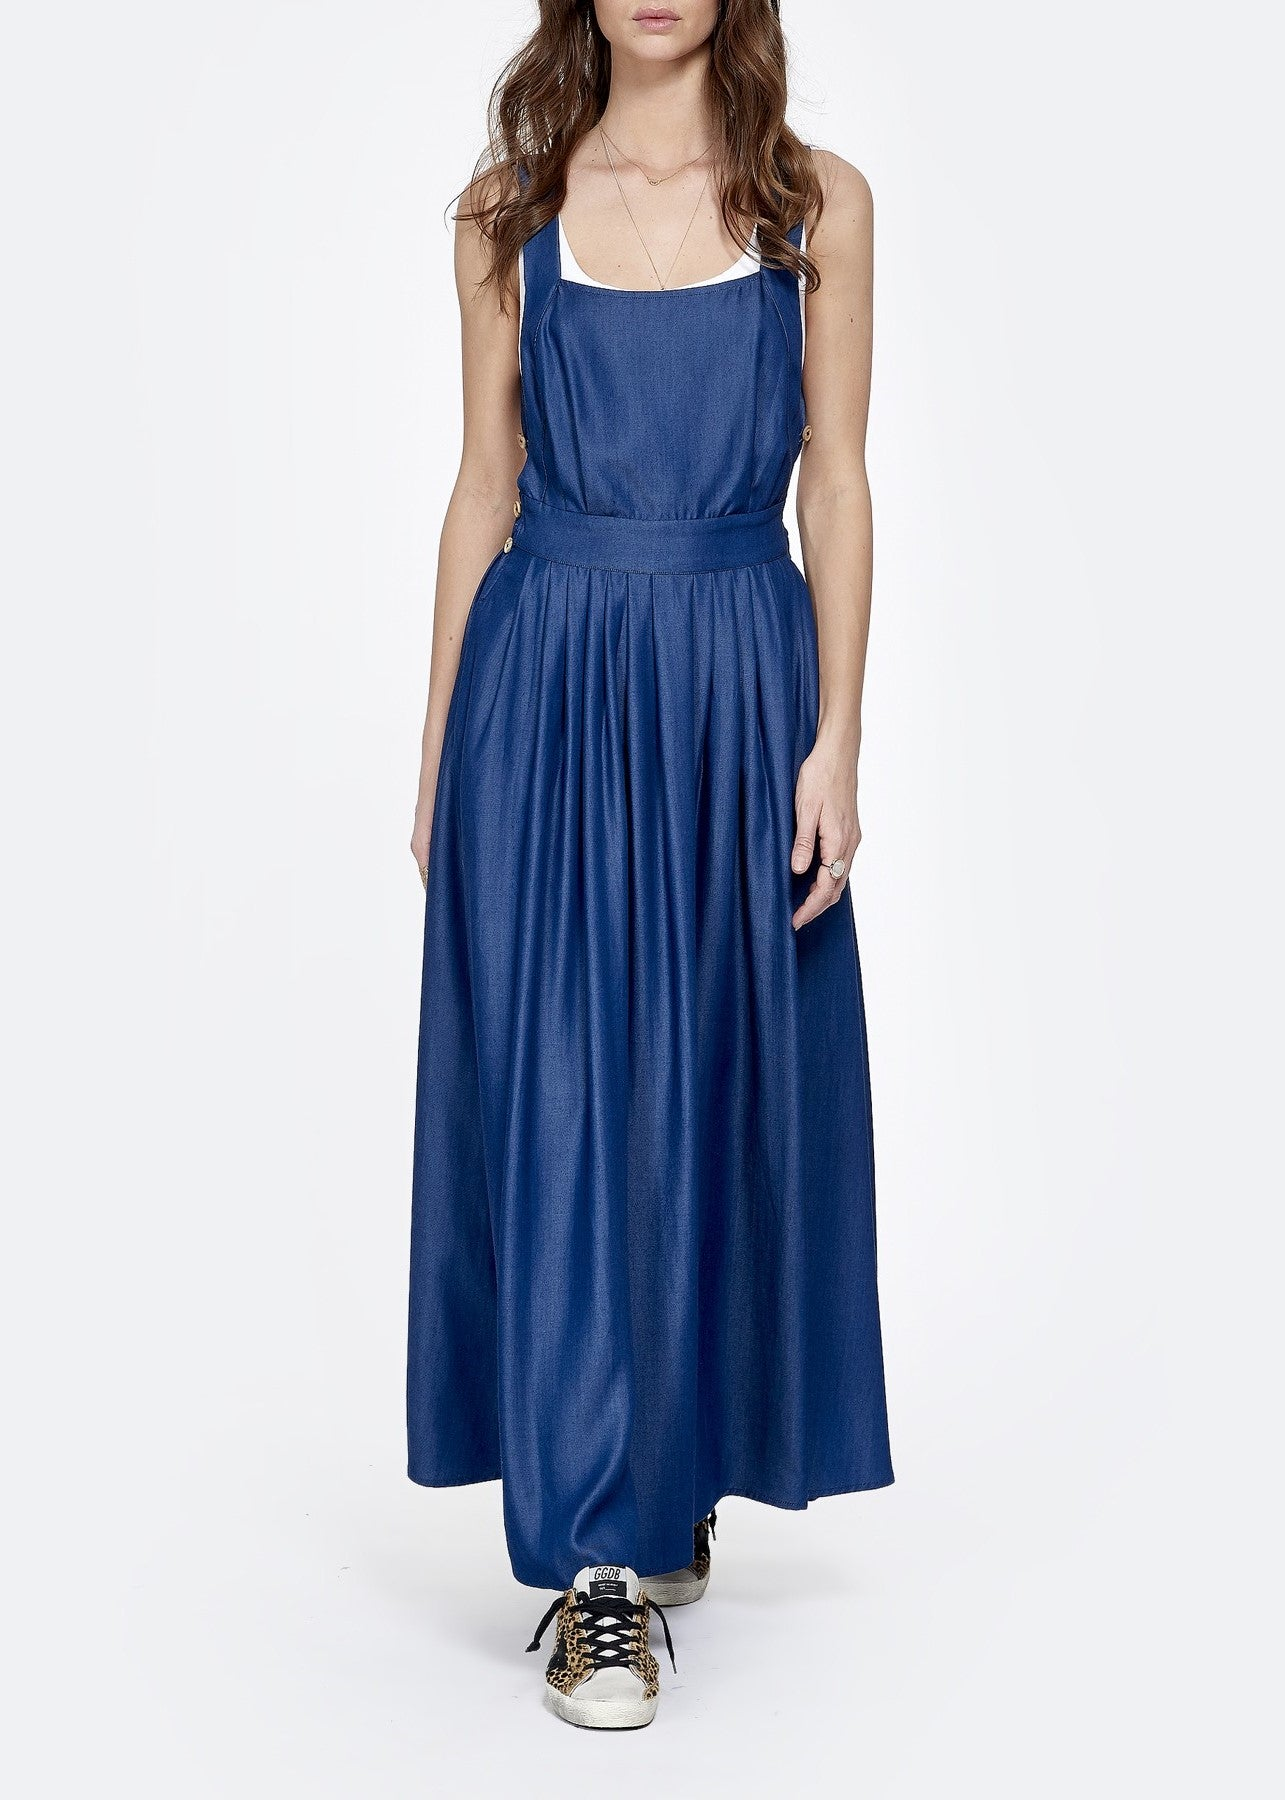 La Dovitch Crima blue cross back dress